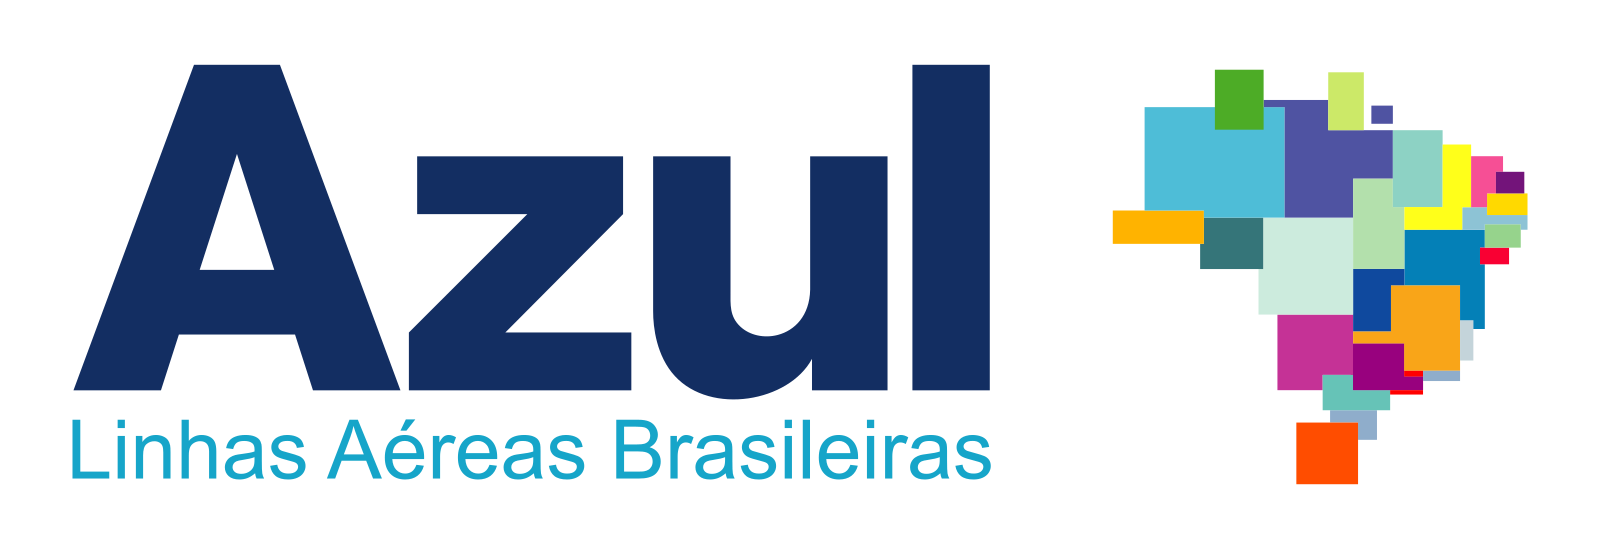 azul airlines logo.